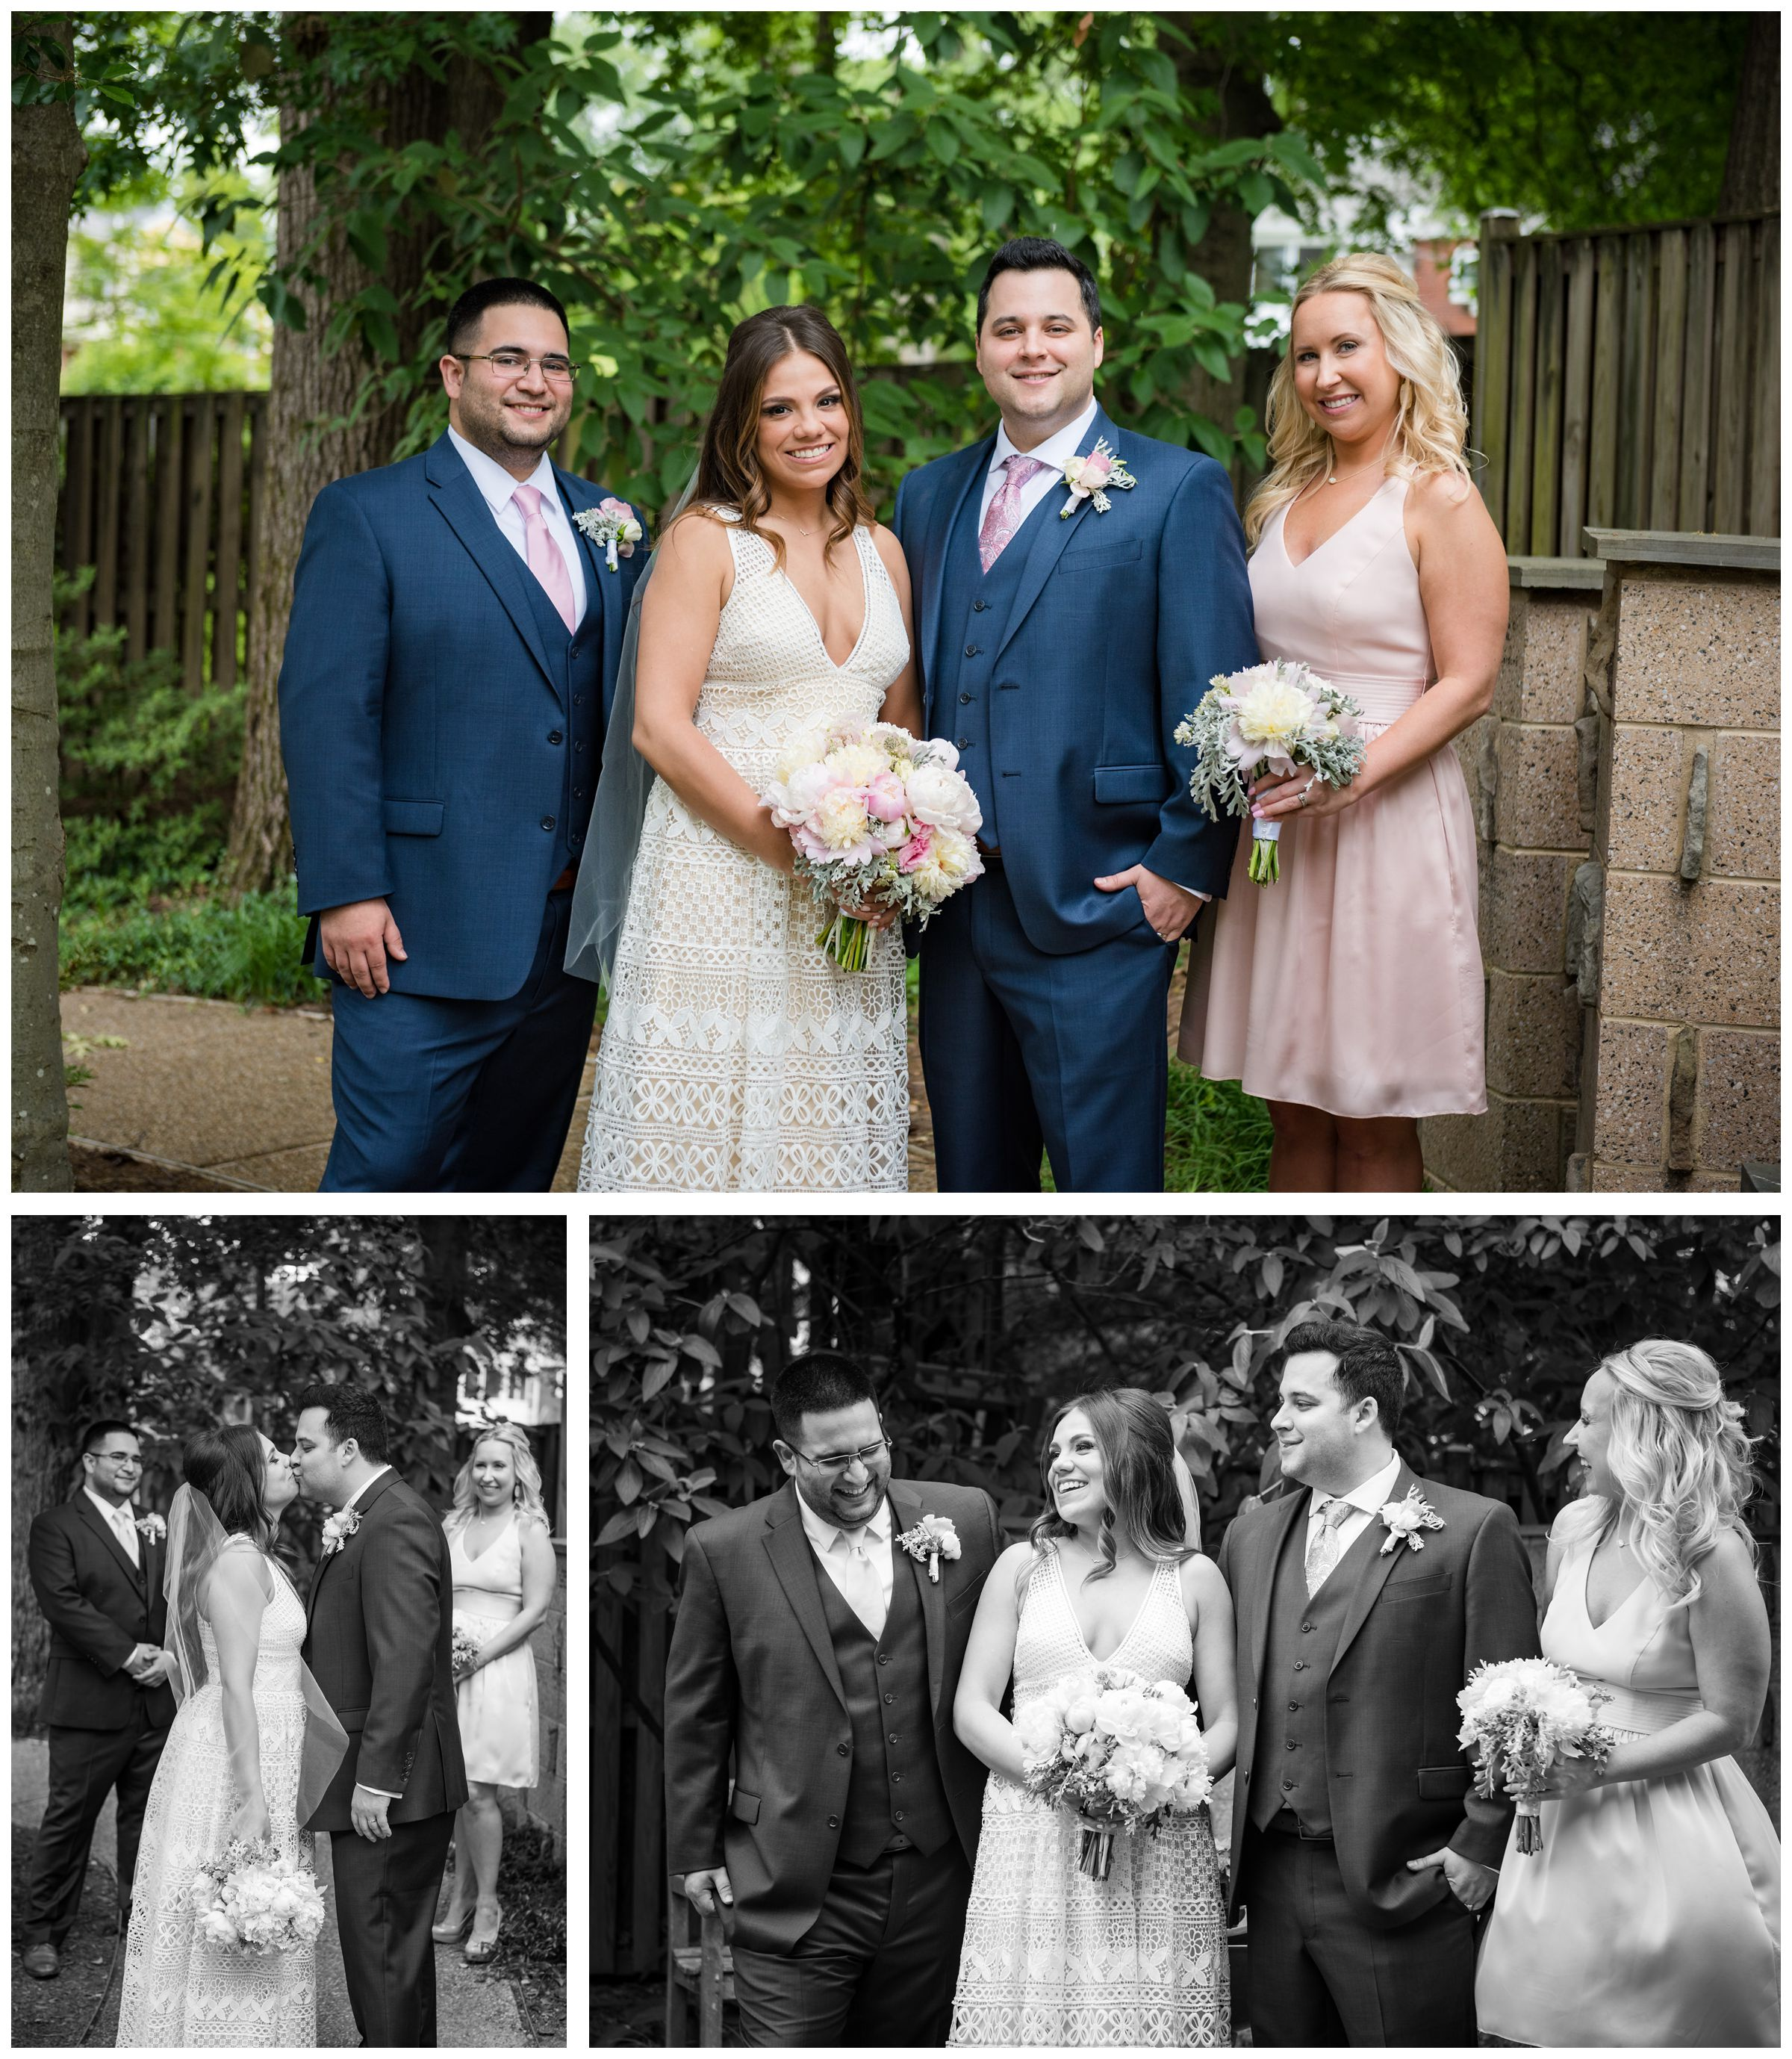 wedding party portraits in garden bride and groom portrait after wedding ceremony at the Unitarian Universalist Church in Arlington, Virginia